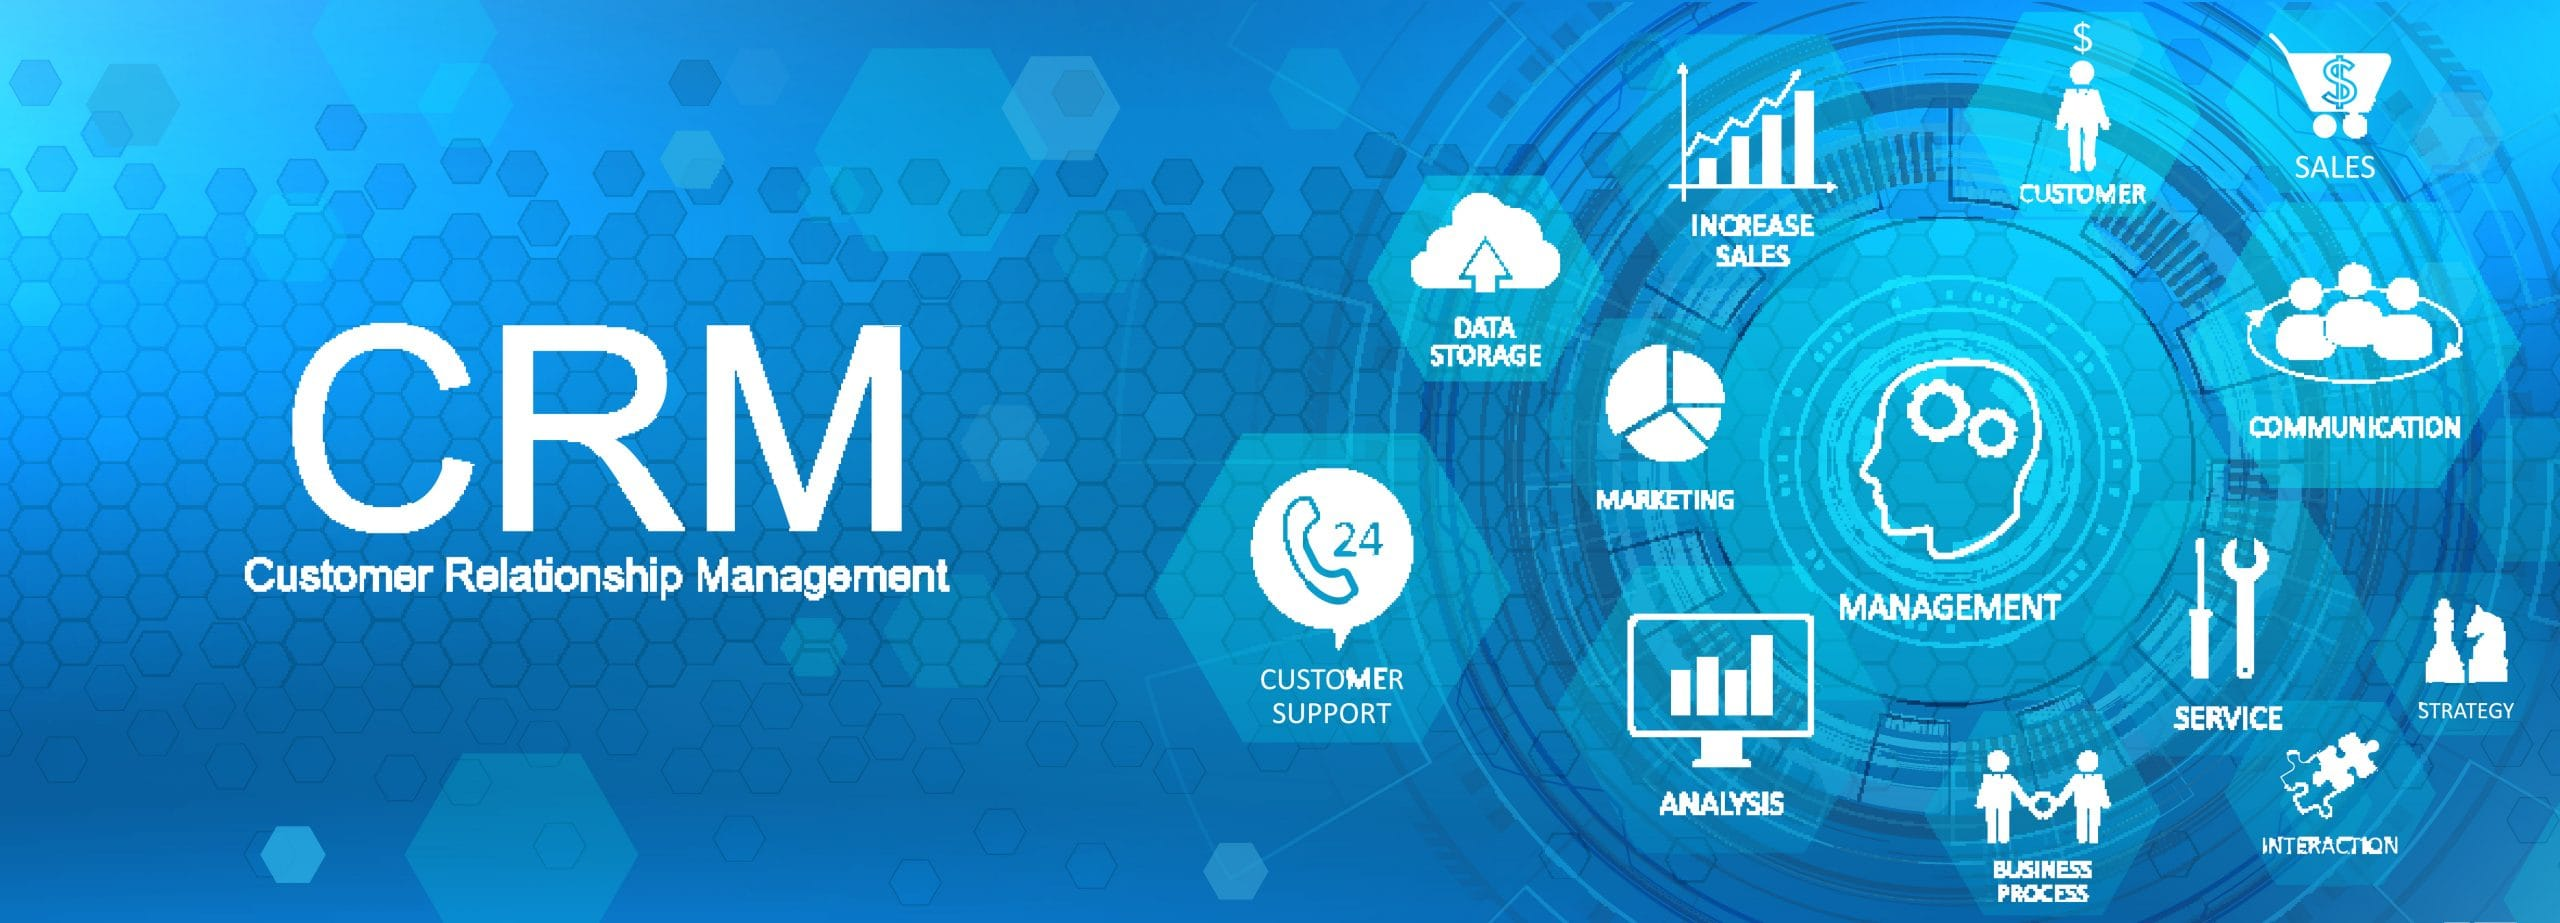 CRM or Customer Relationship features Offered by Email Marketing Automation Platform